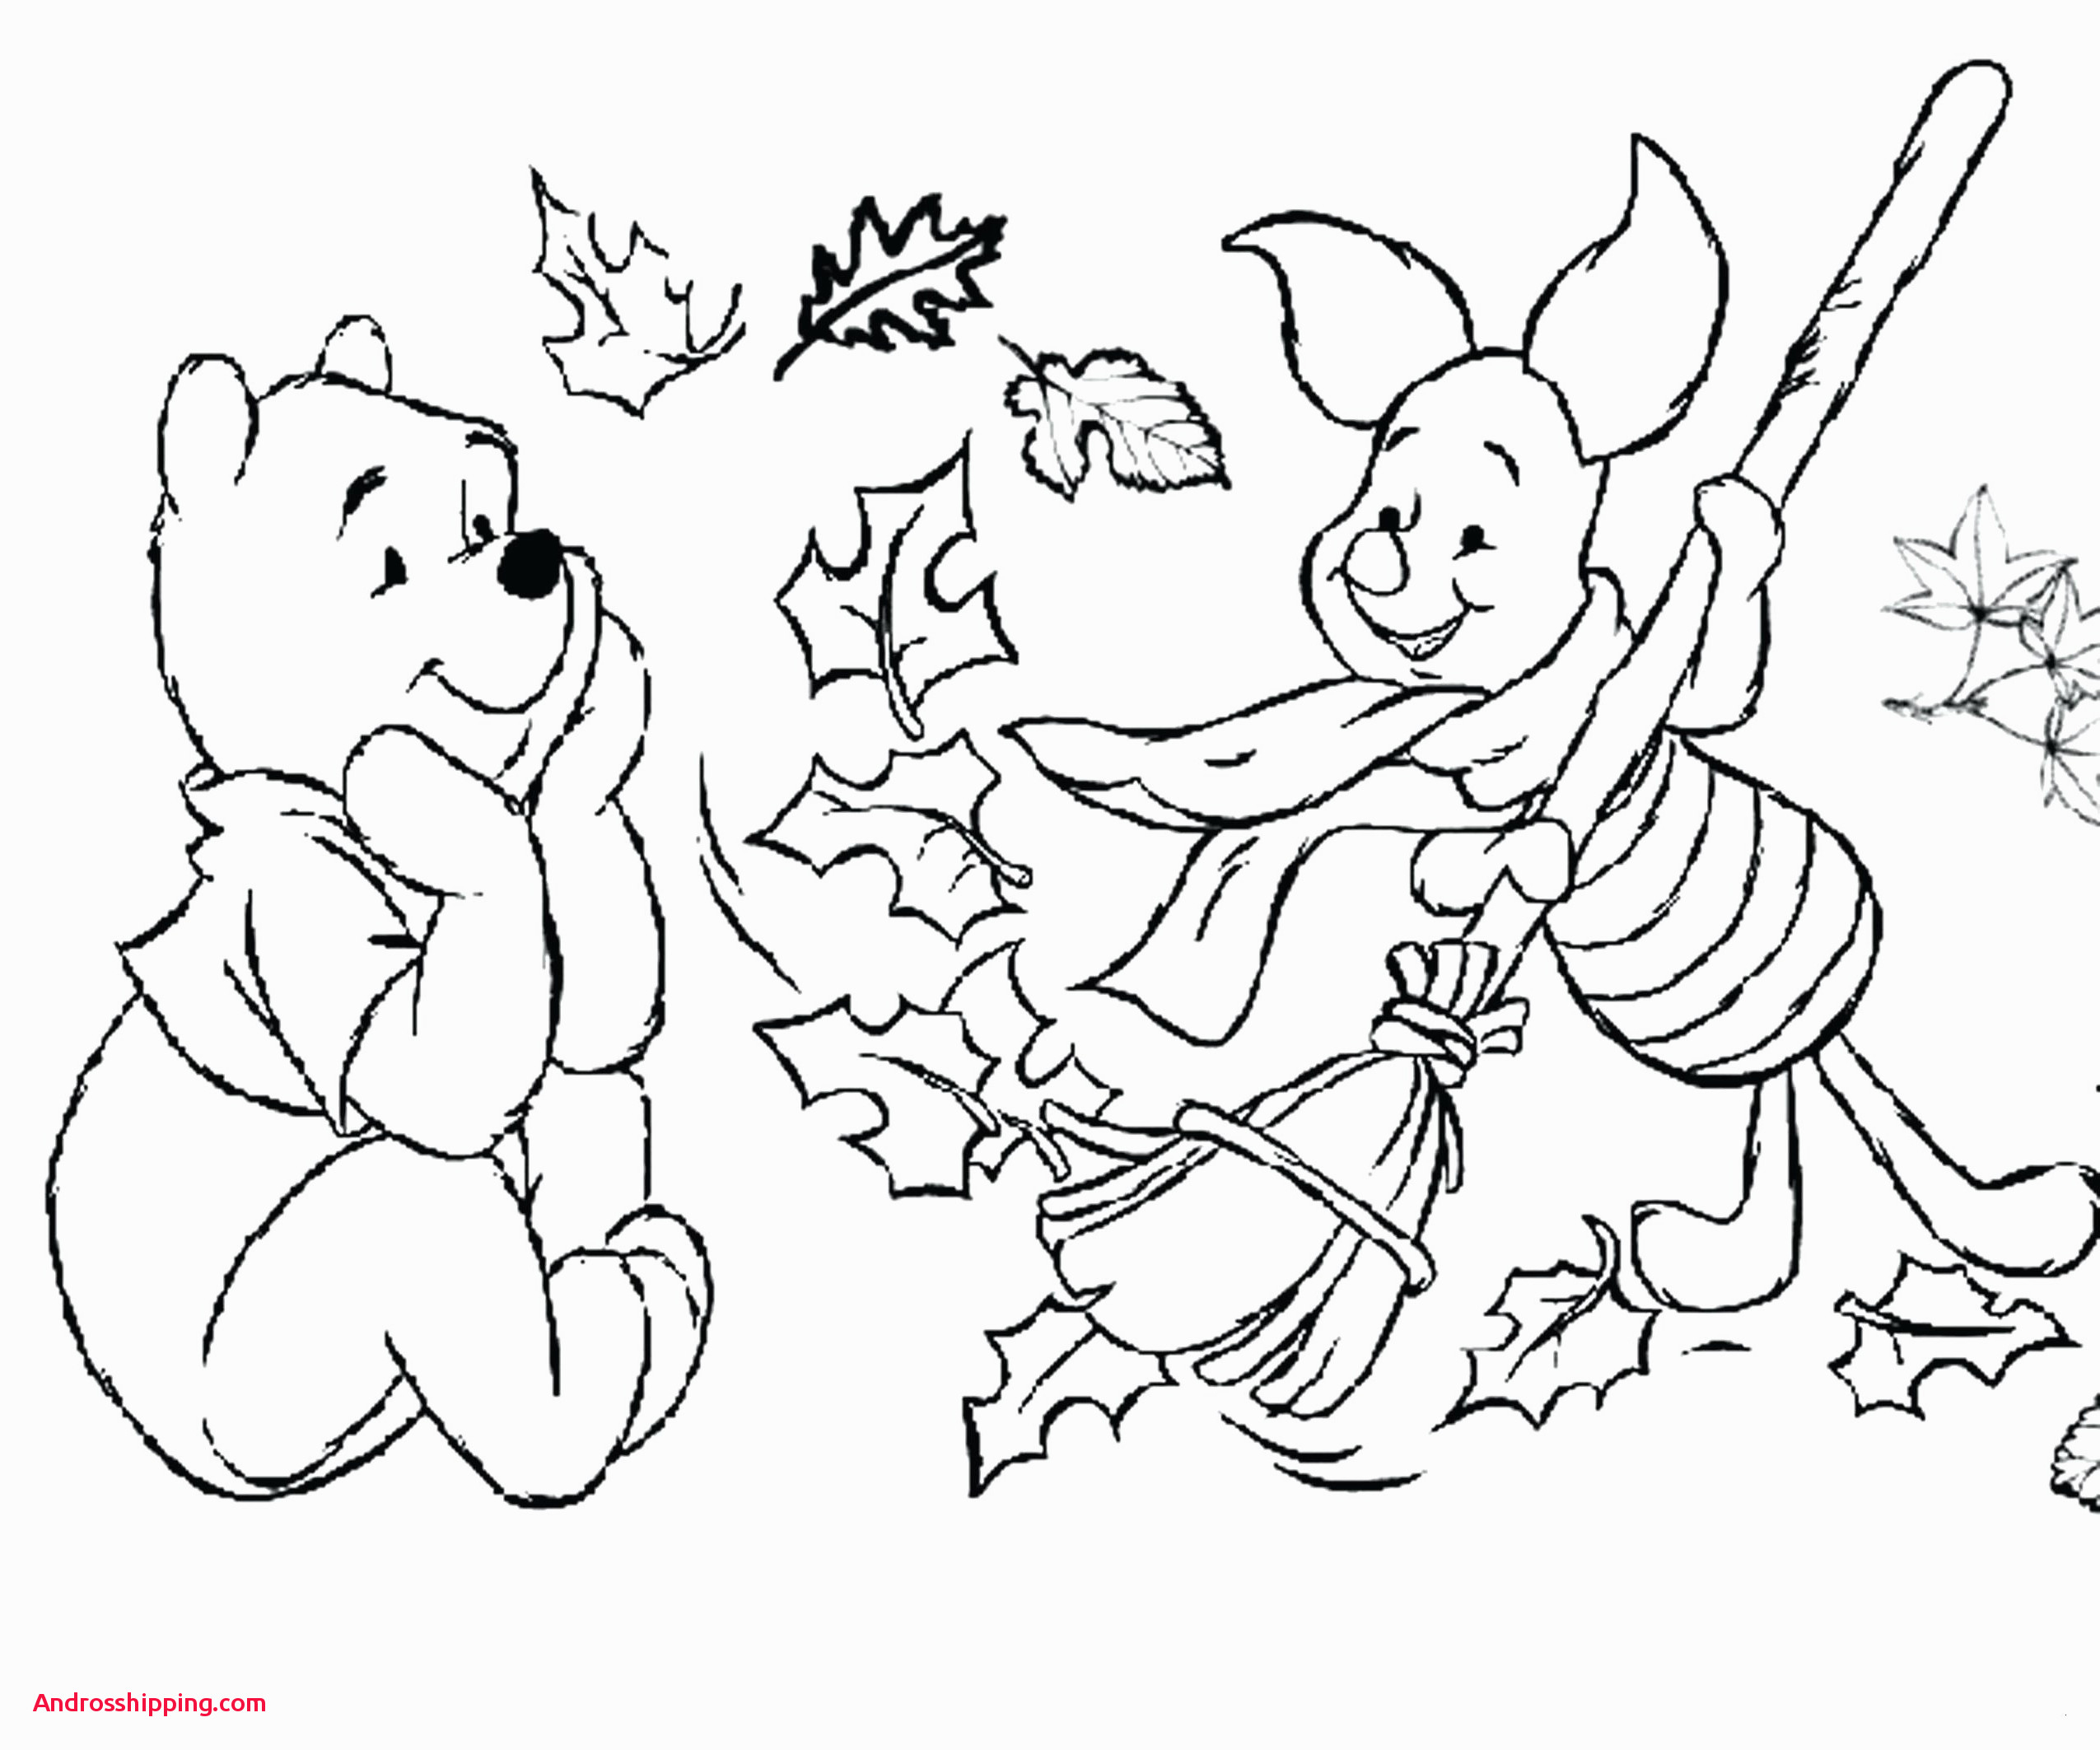 Mini Coloring Pages  Gallery 12g - To print for your project